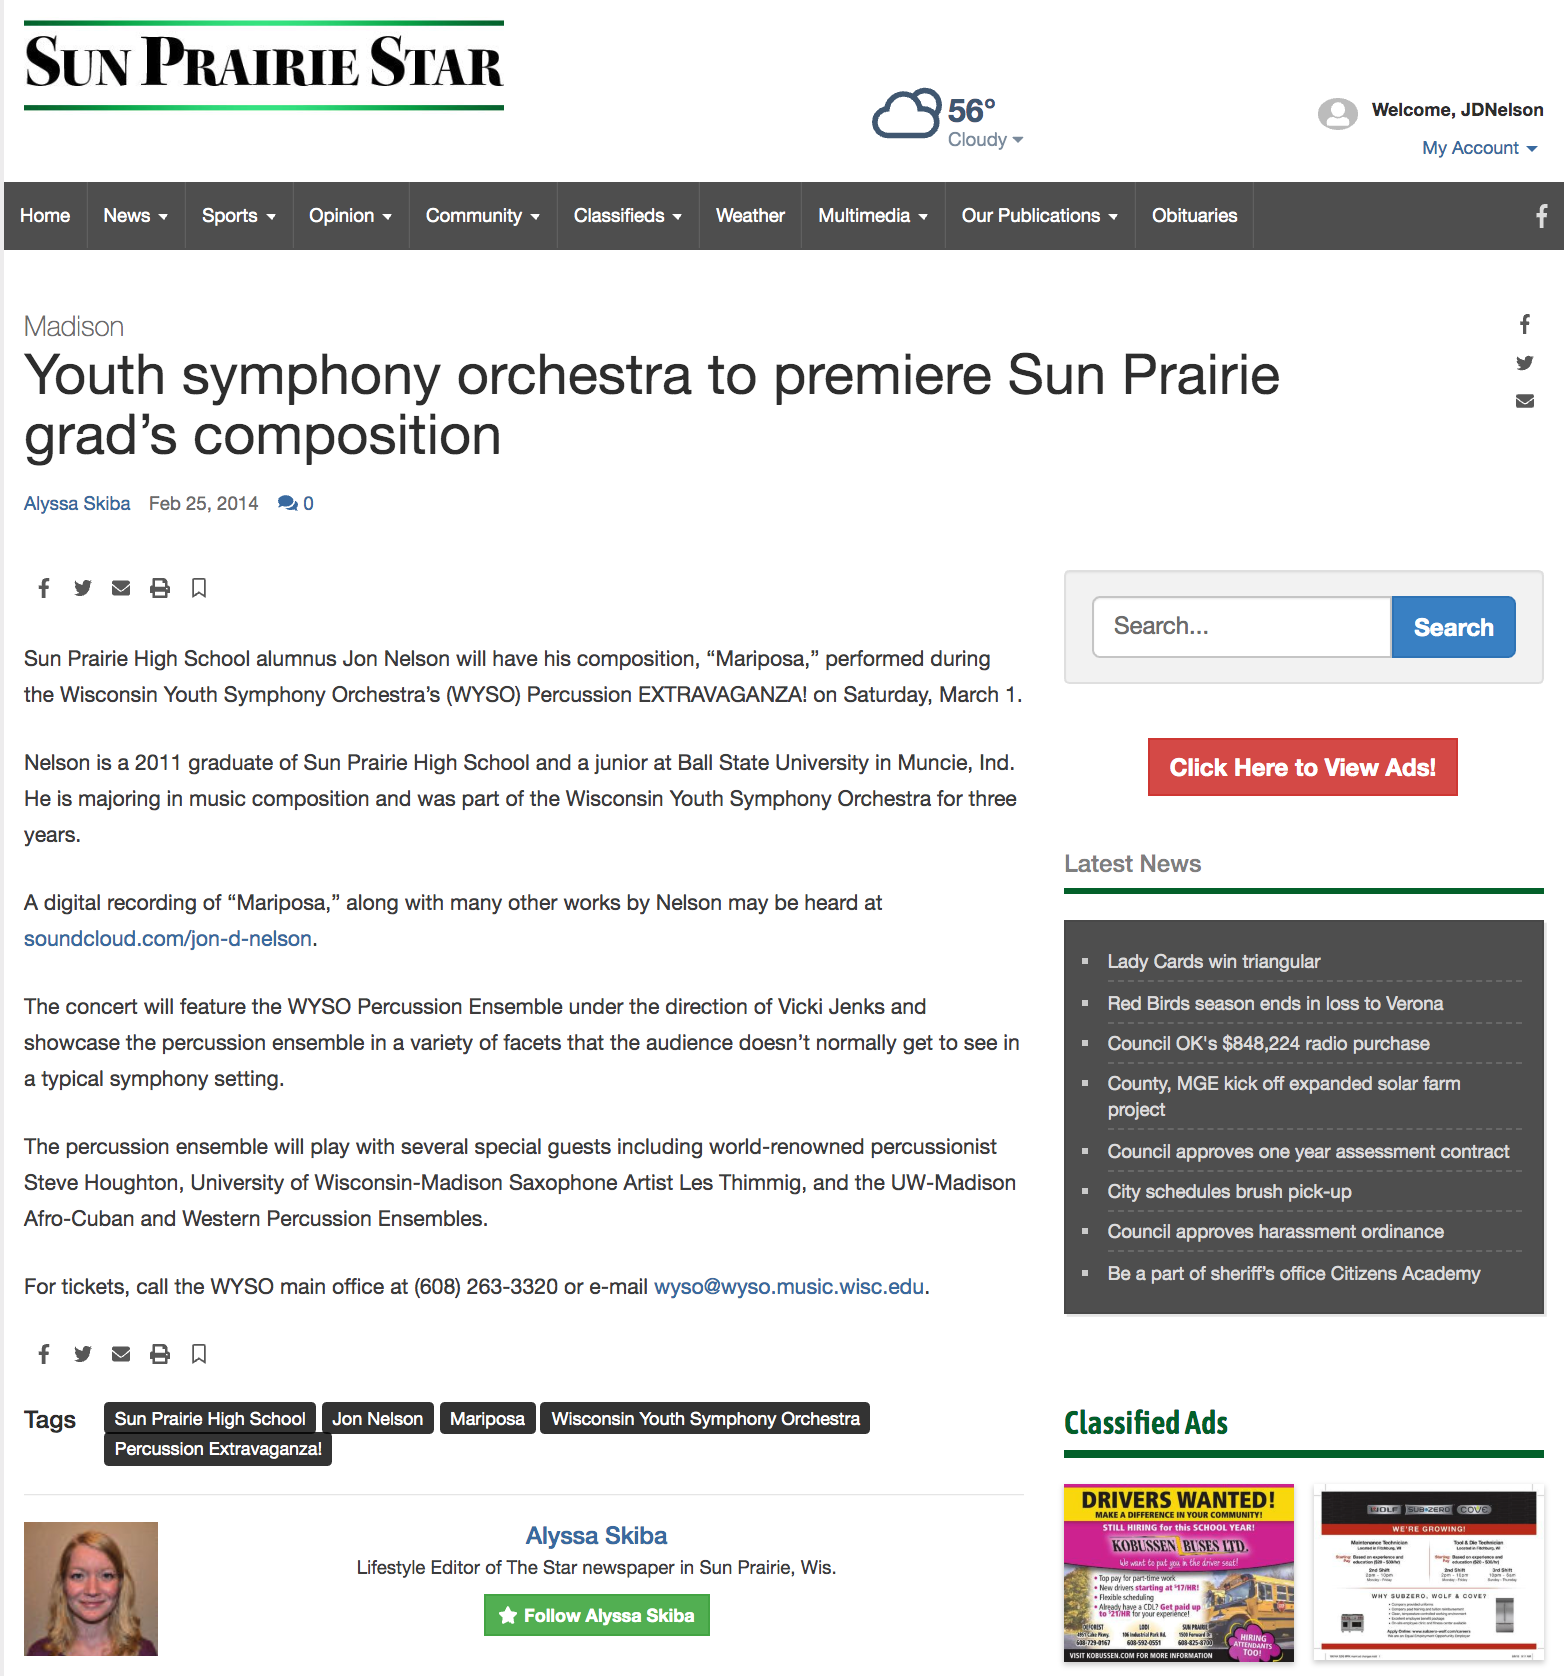 View Original Article Online:  http://www.hngnews.com/sun_prairie_star/community/features/article_801d260c-9e34-11e3-ad1a-001a4bcf6878.html